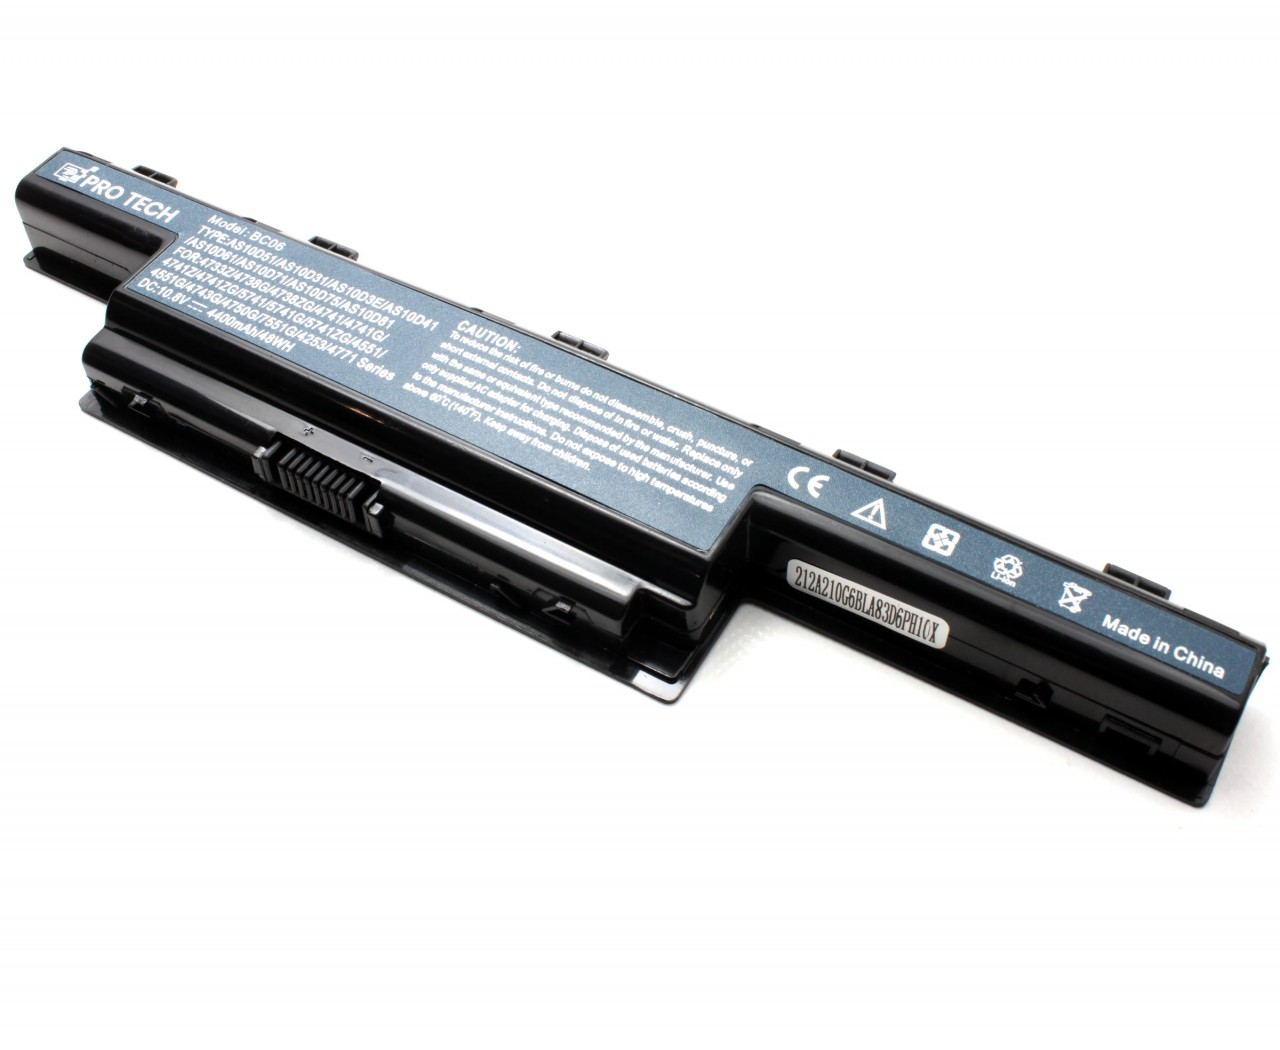 Baterie Packard Bell EasyNote LM82 9 celule imagine powerlaptop.ro 2021